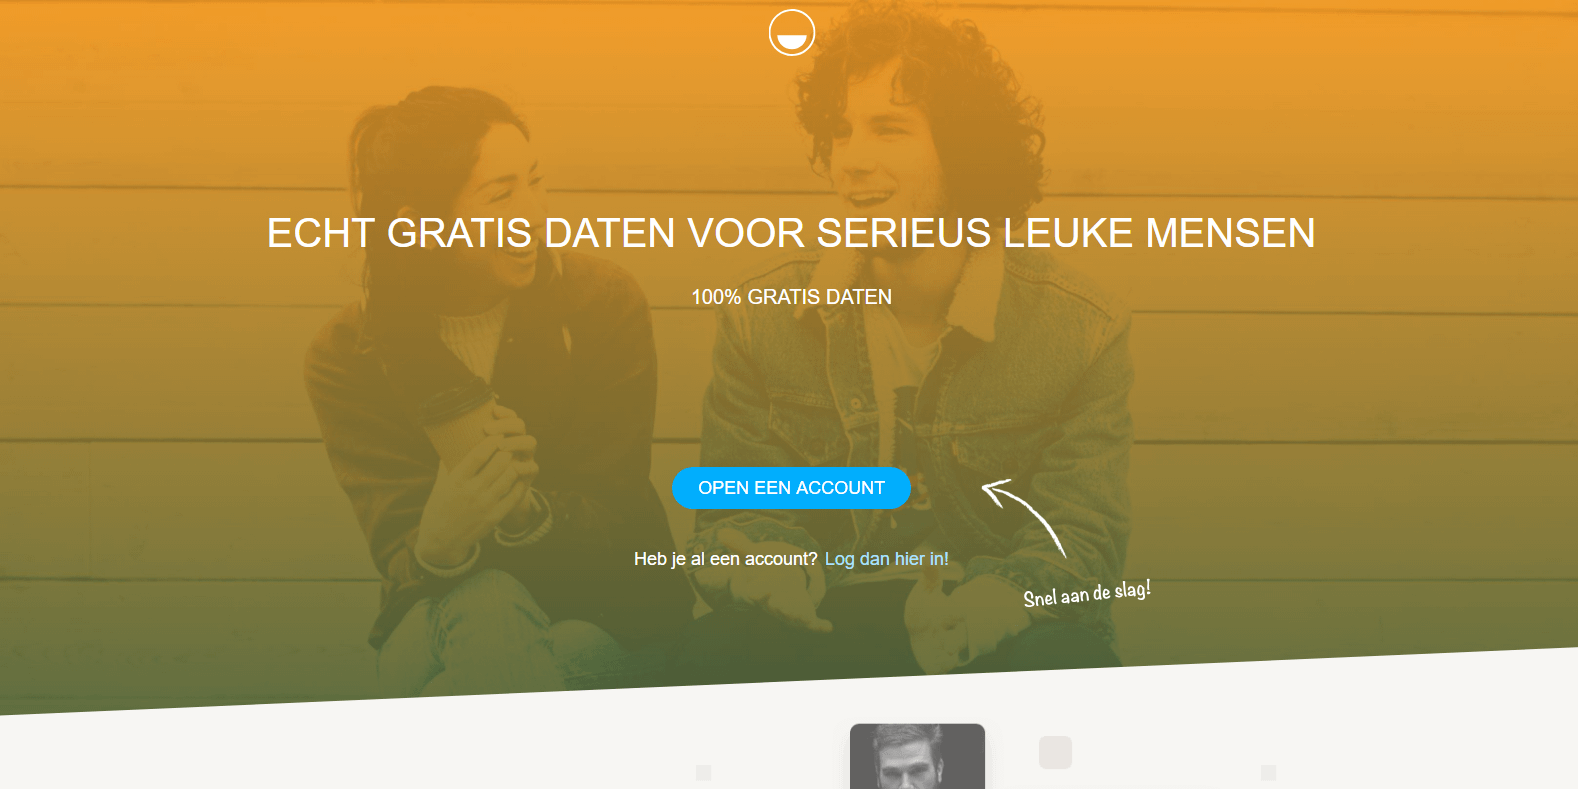 gratis online dating in de regio